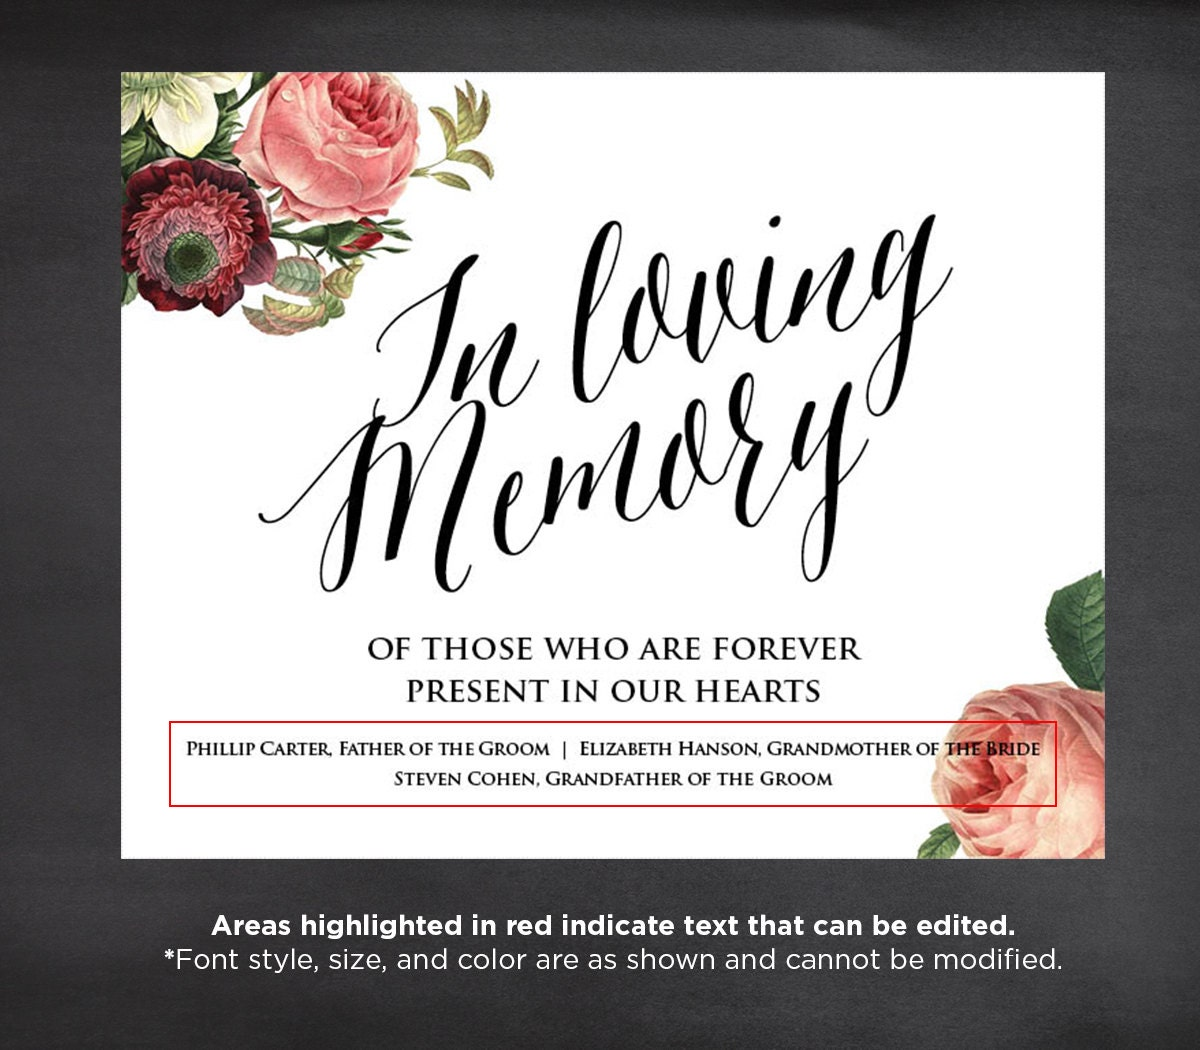 In Loving Memory Templates In Loving Memory Of Templates Www ...